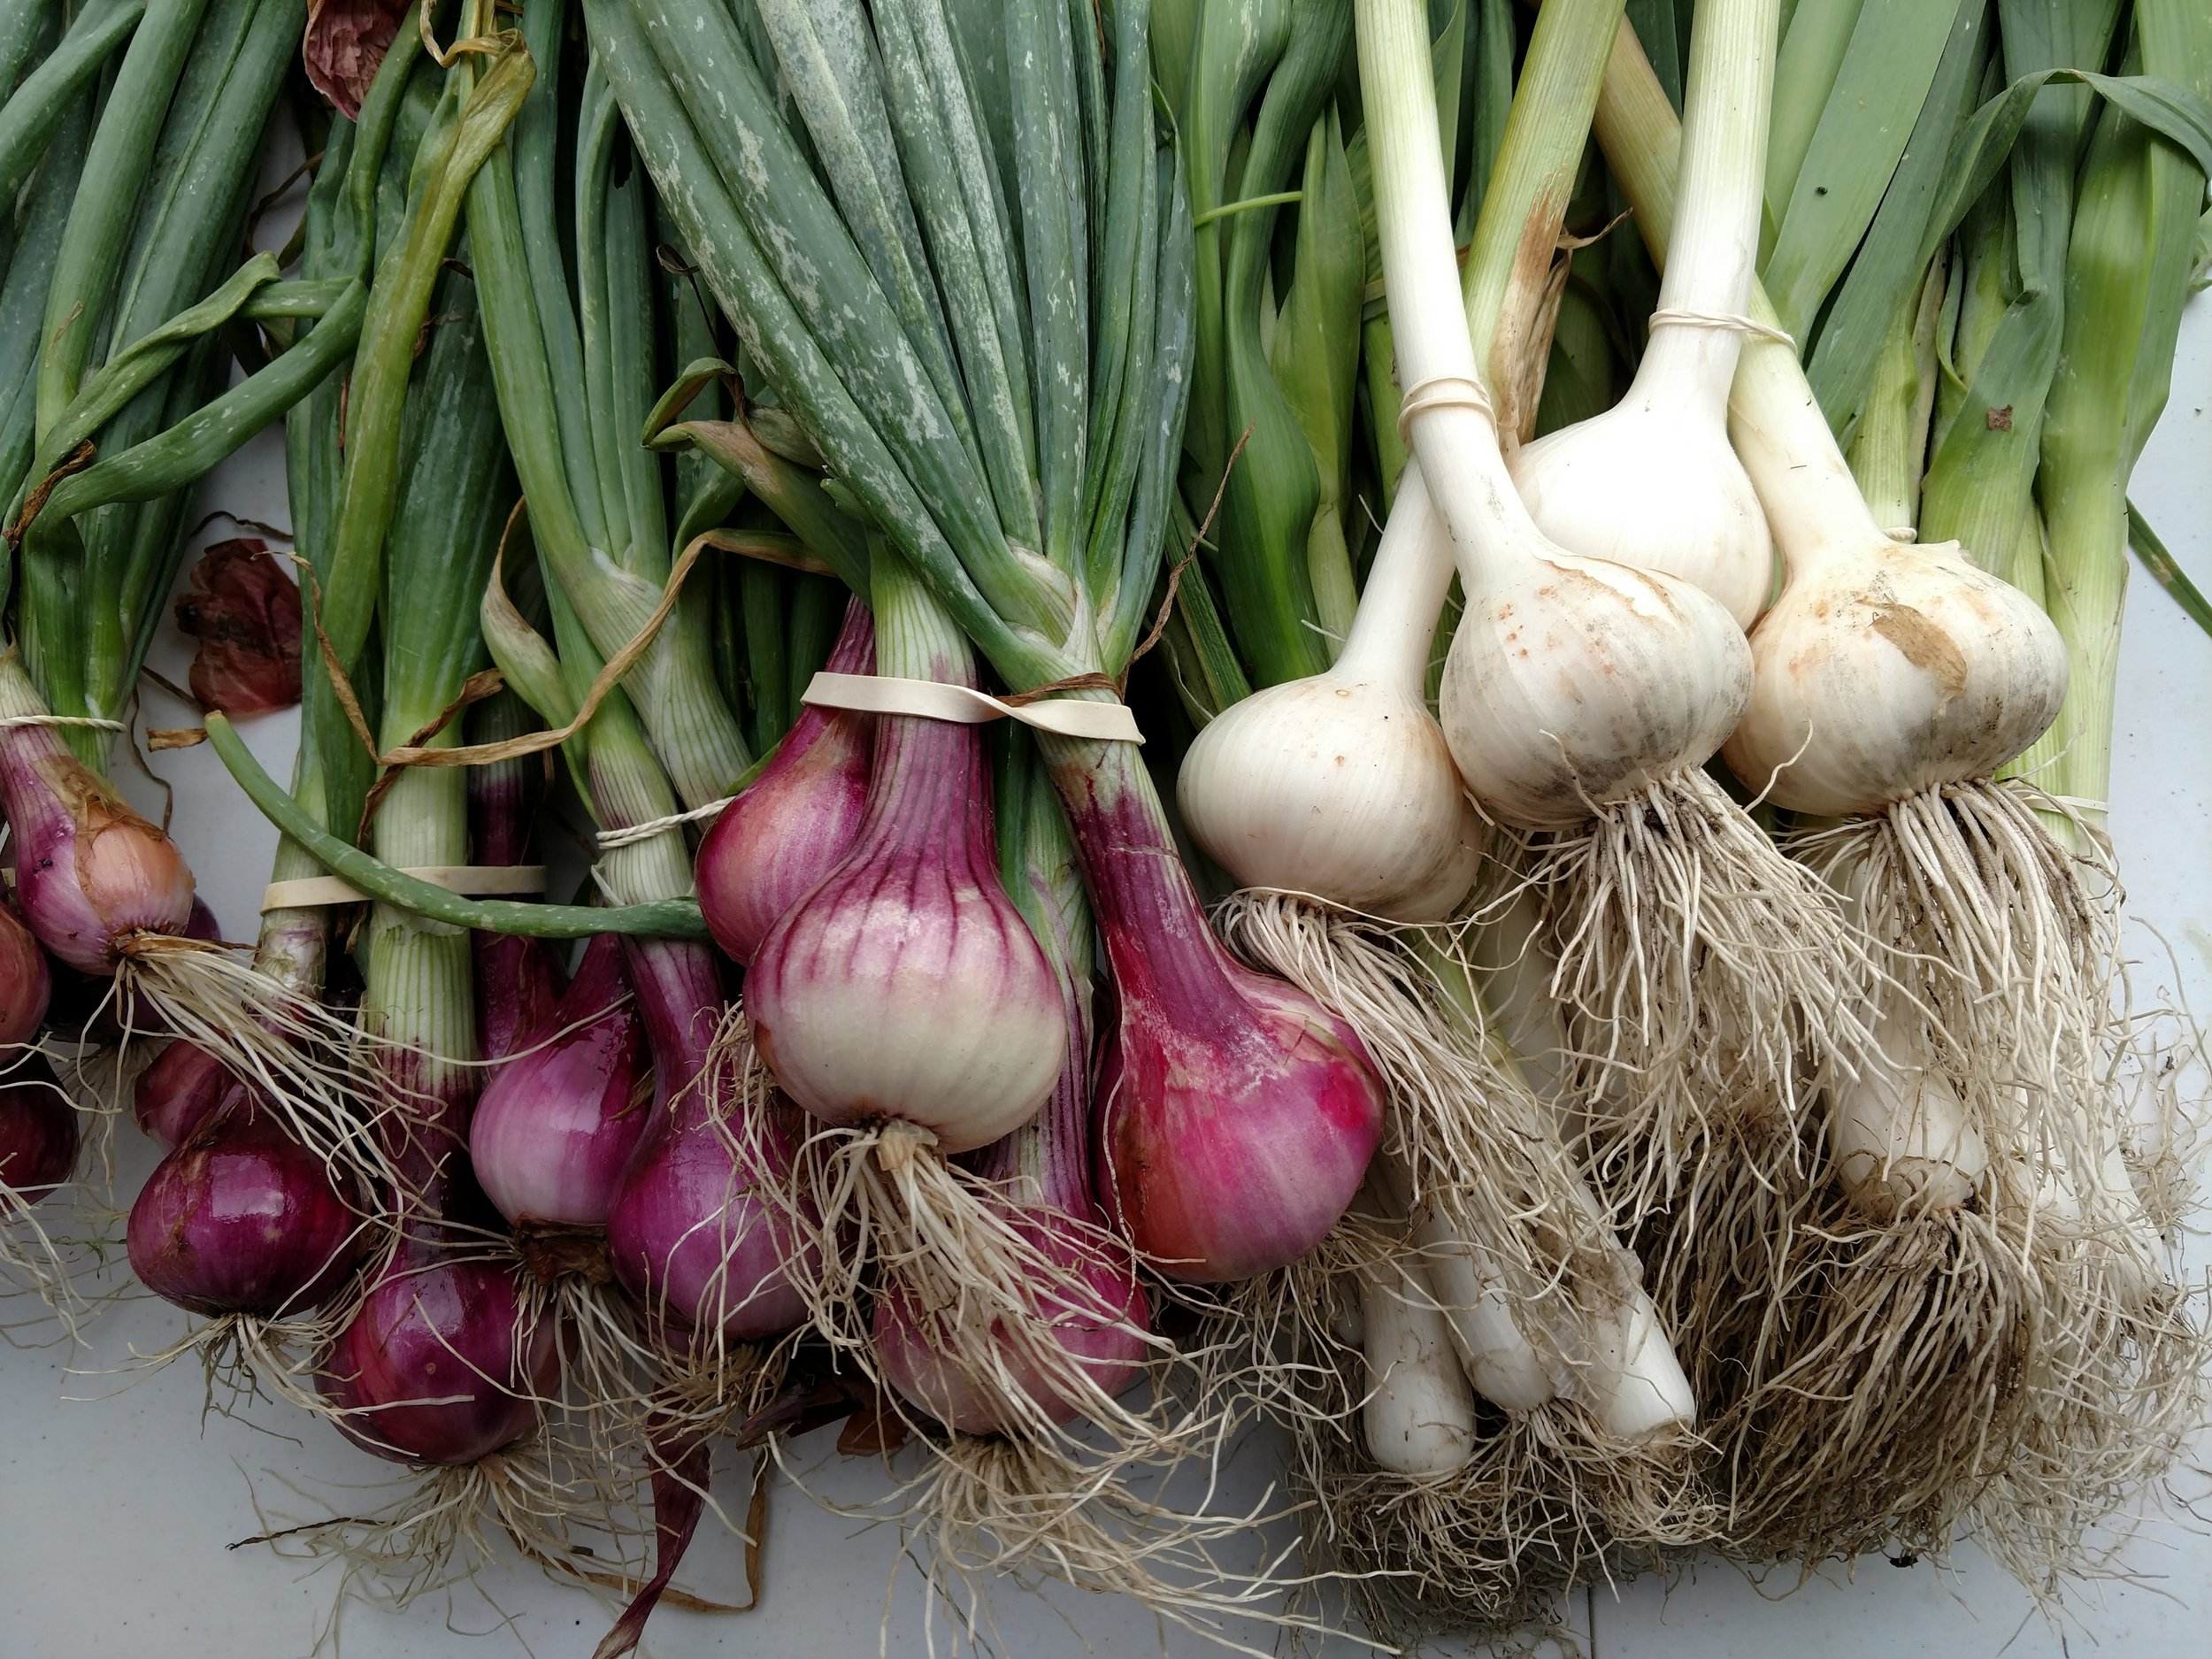 Shallots and Garlic, Hoot Blossom Farm